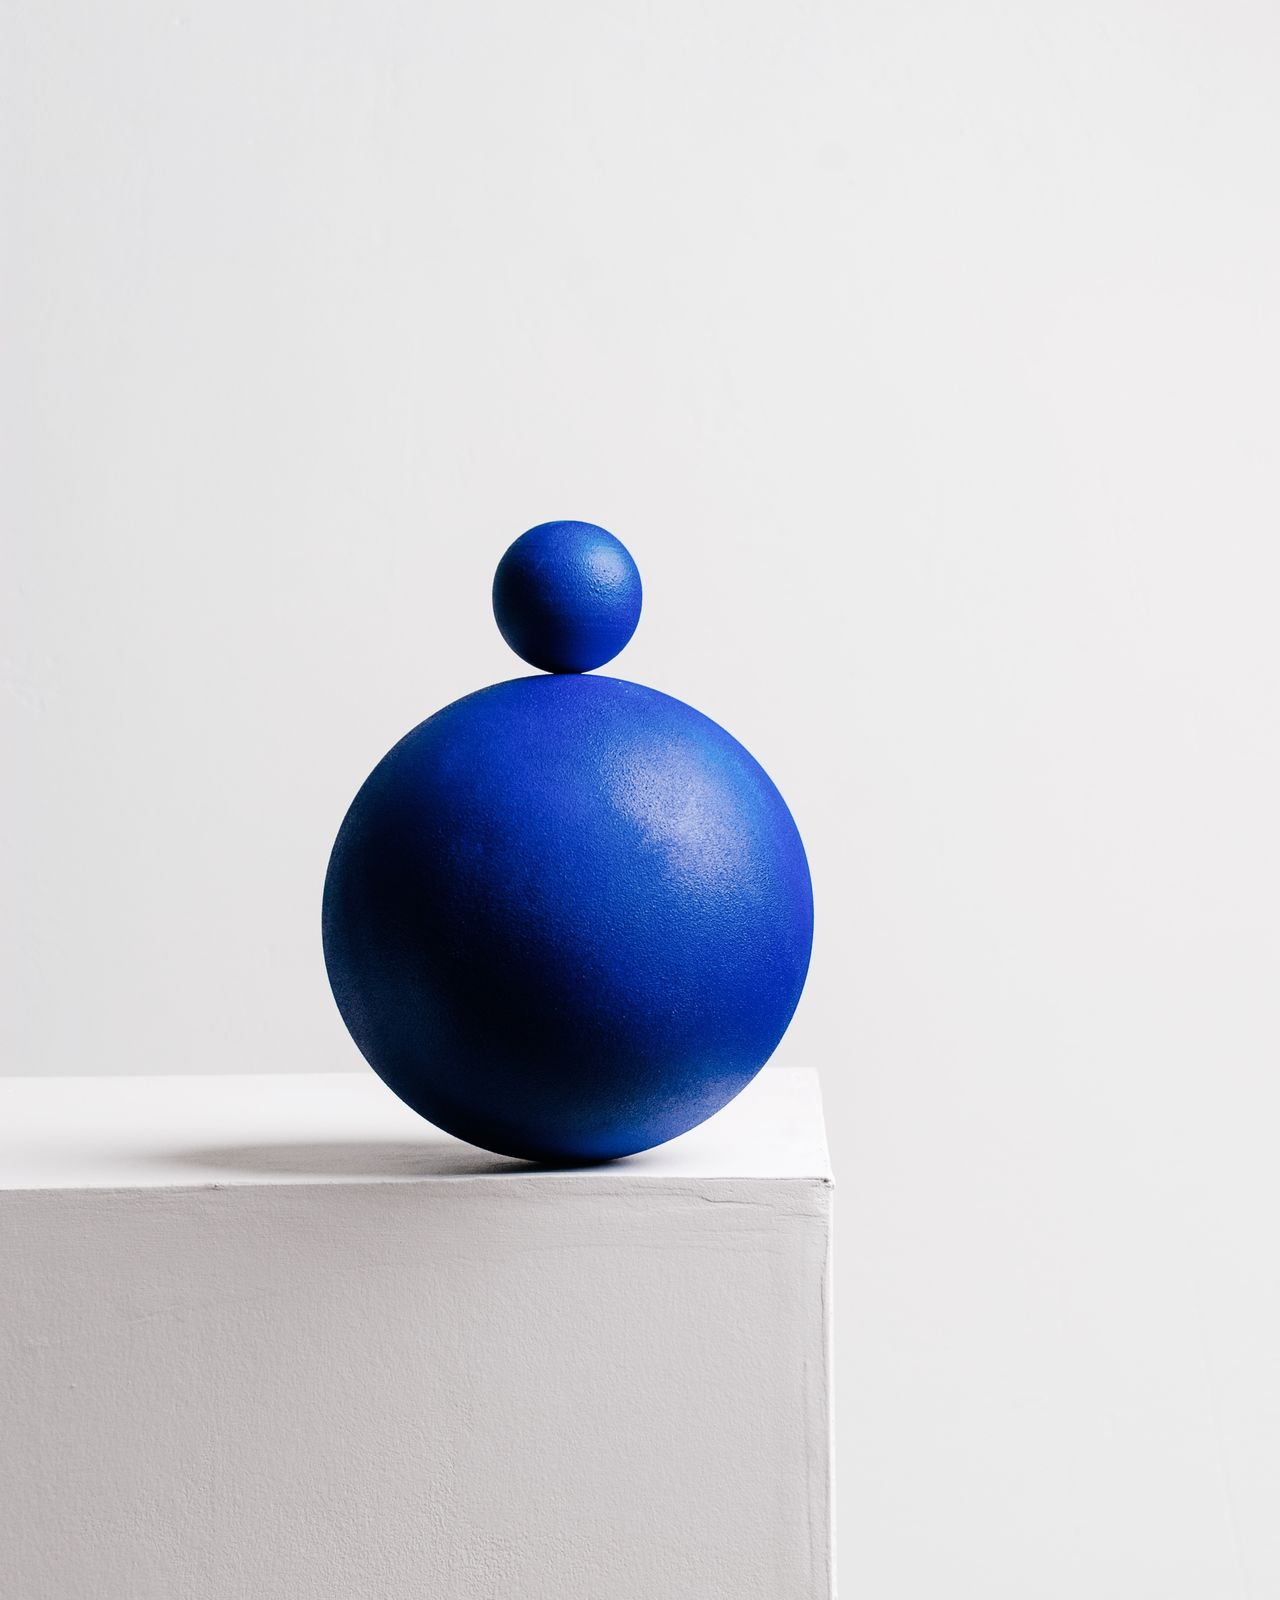 Close-up of blue spheres on table against white wall